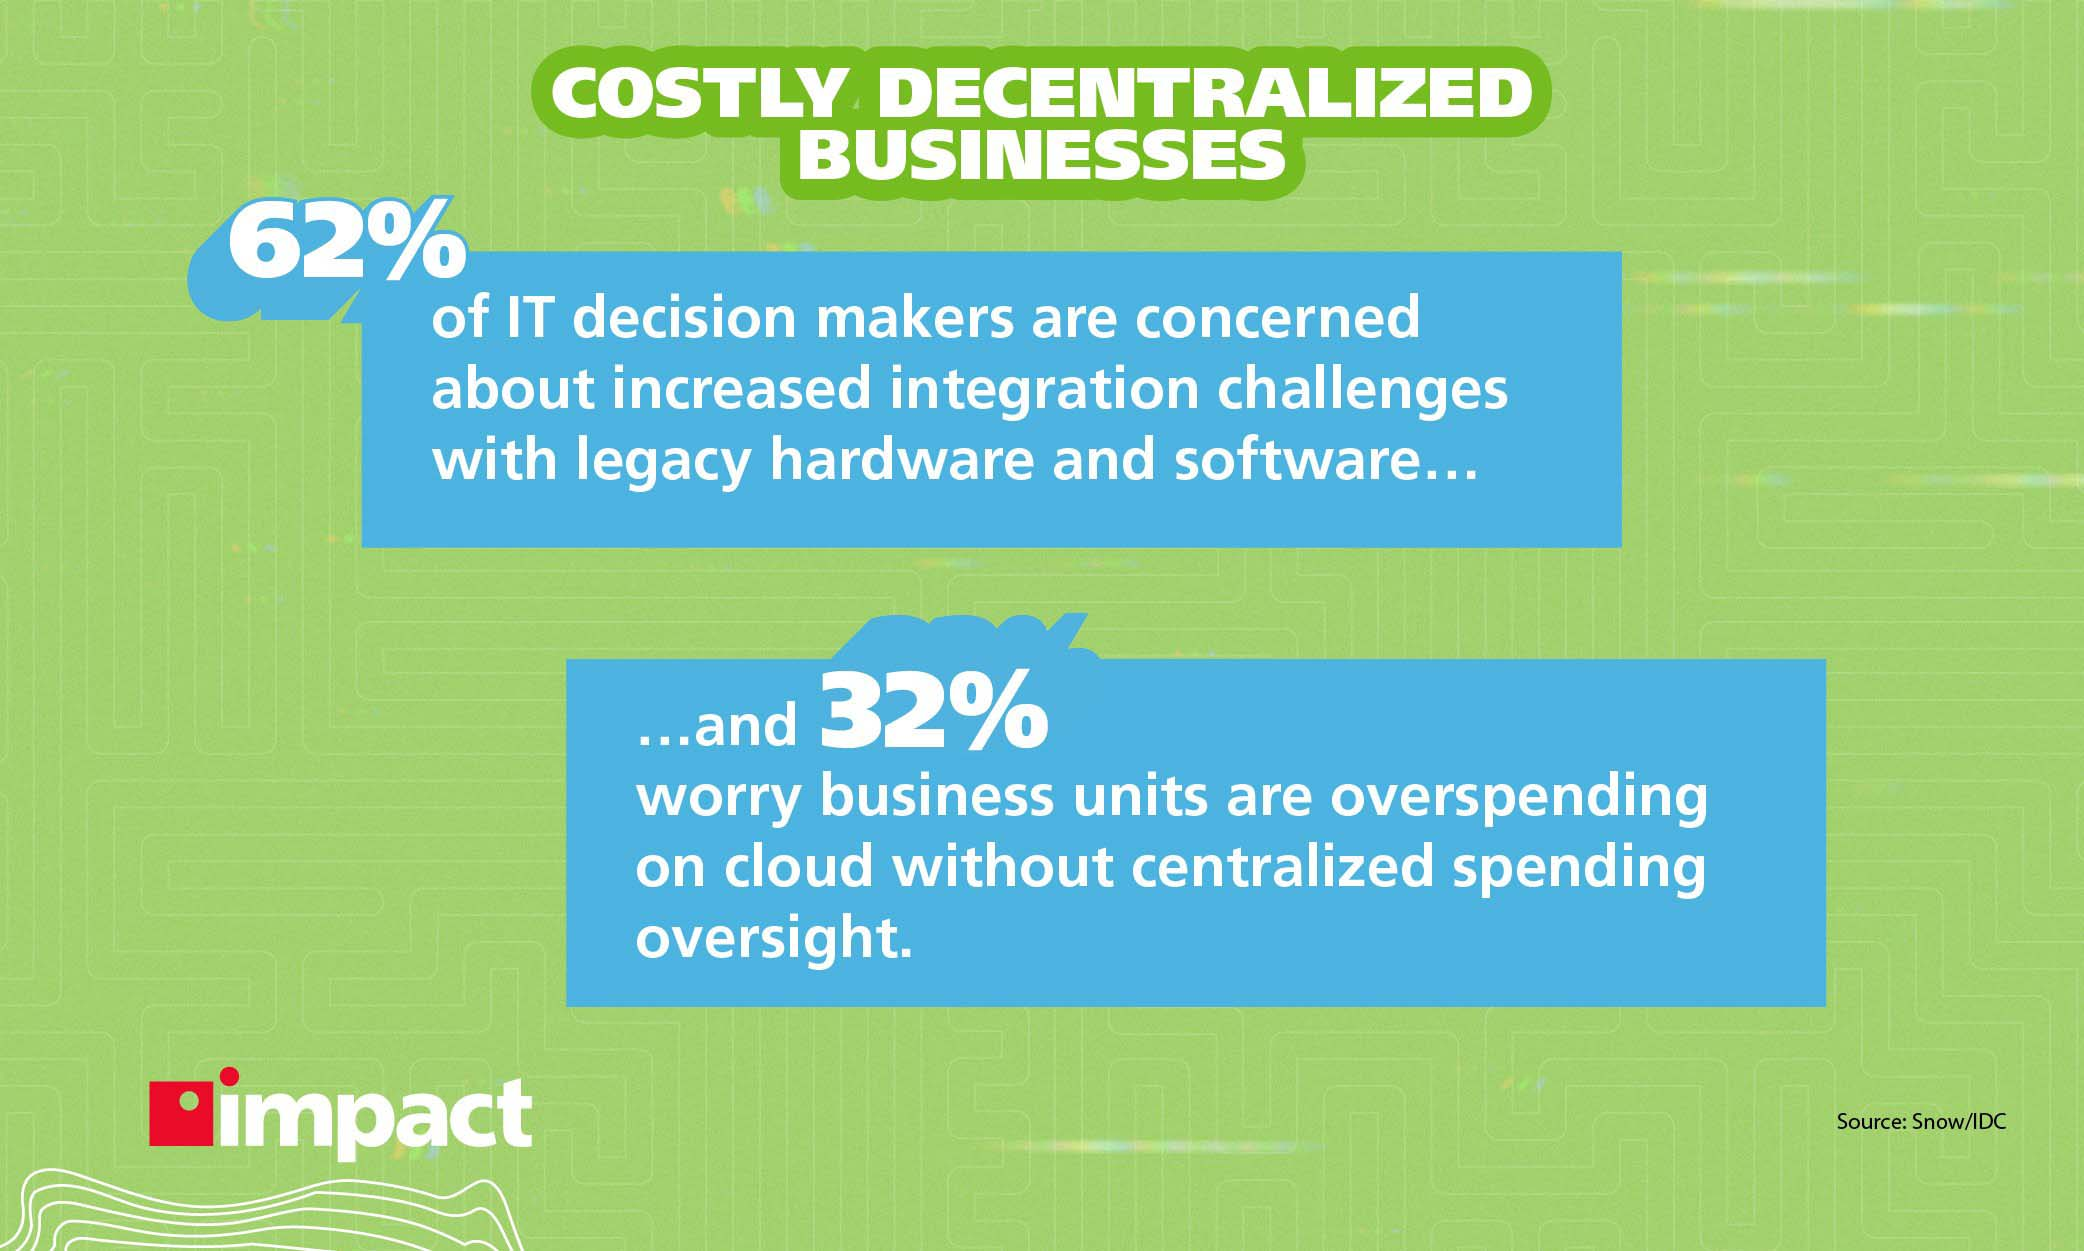 Statistics on the cost of decentralized business.